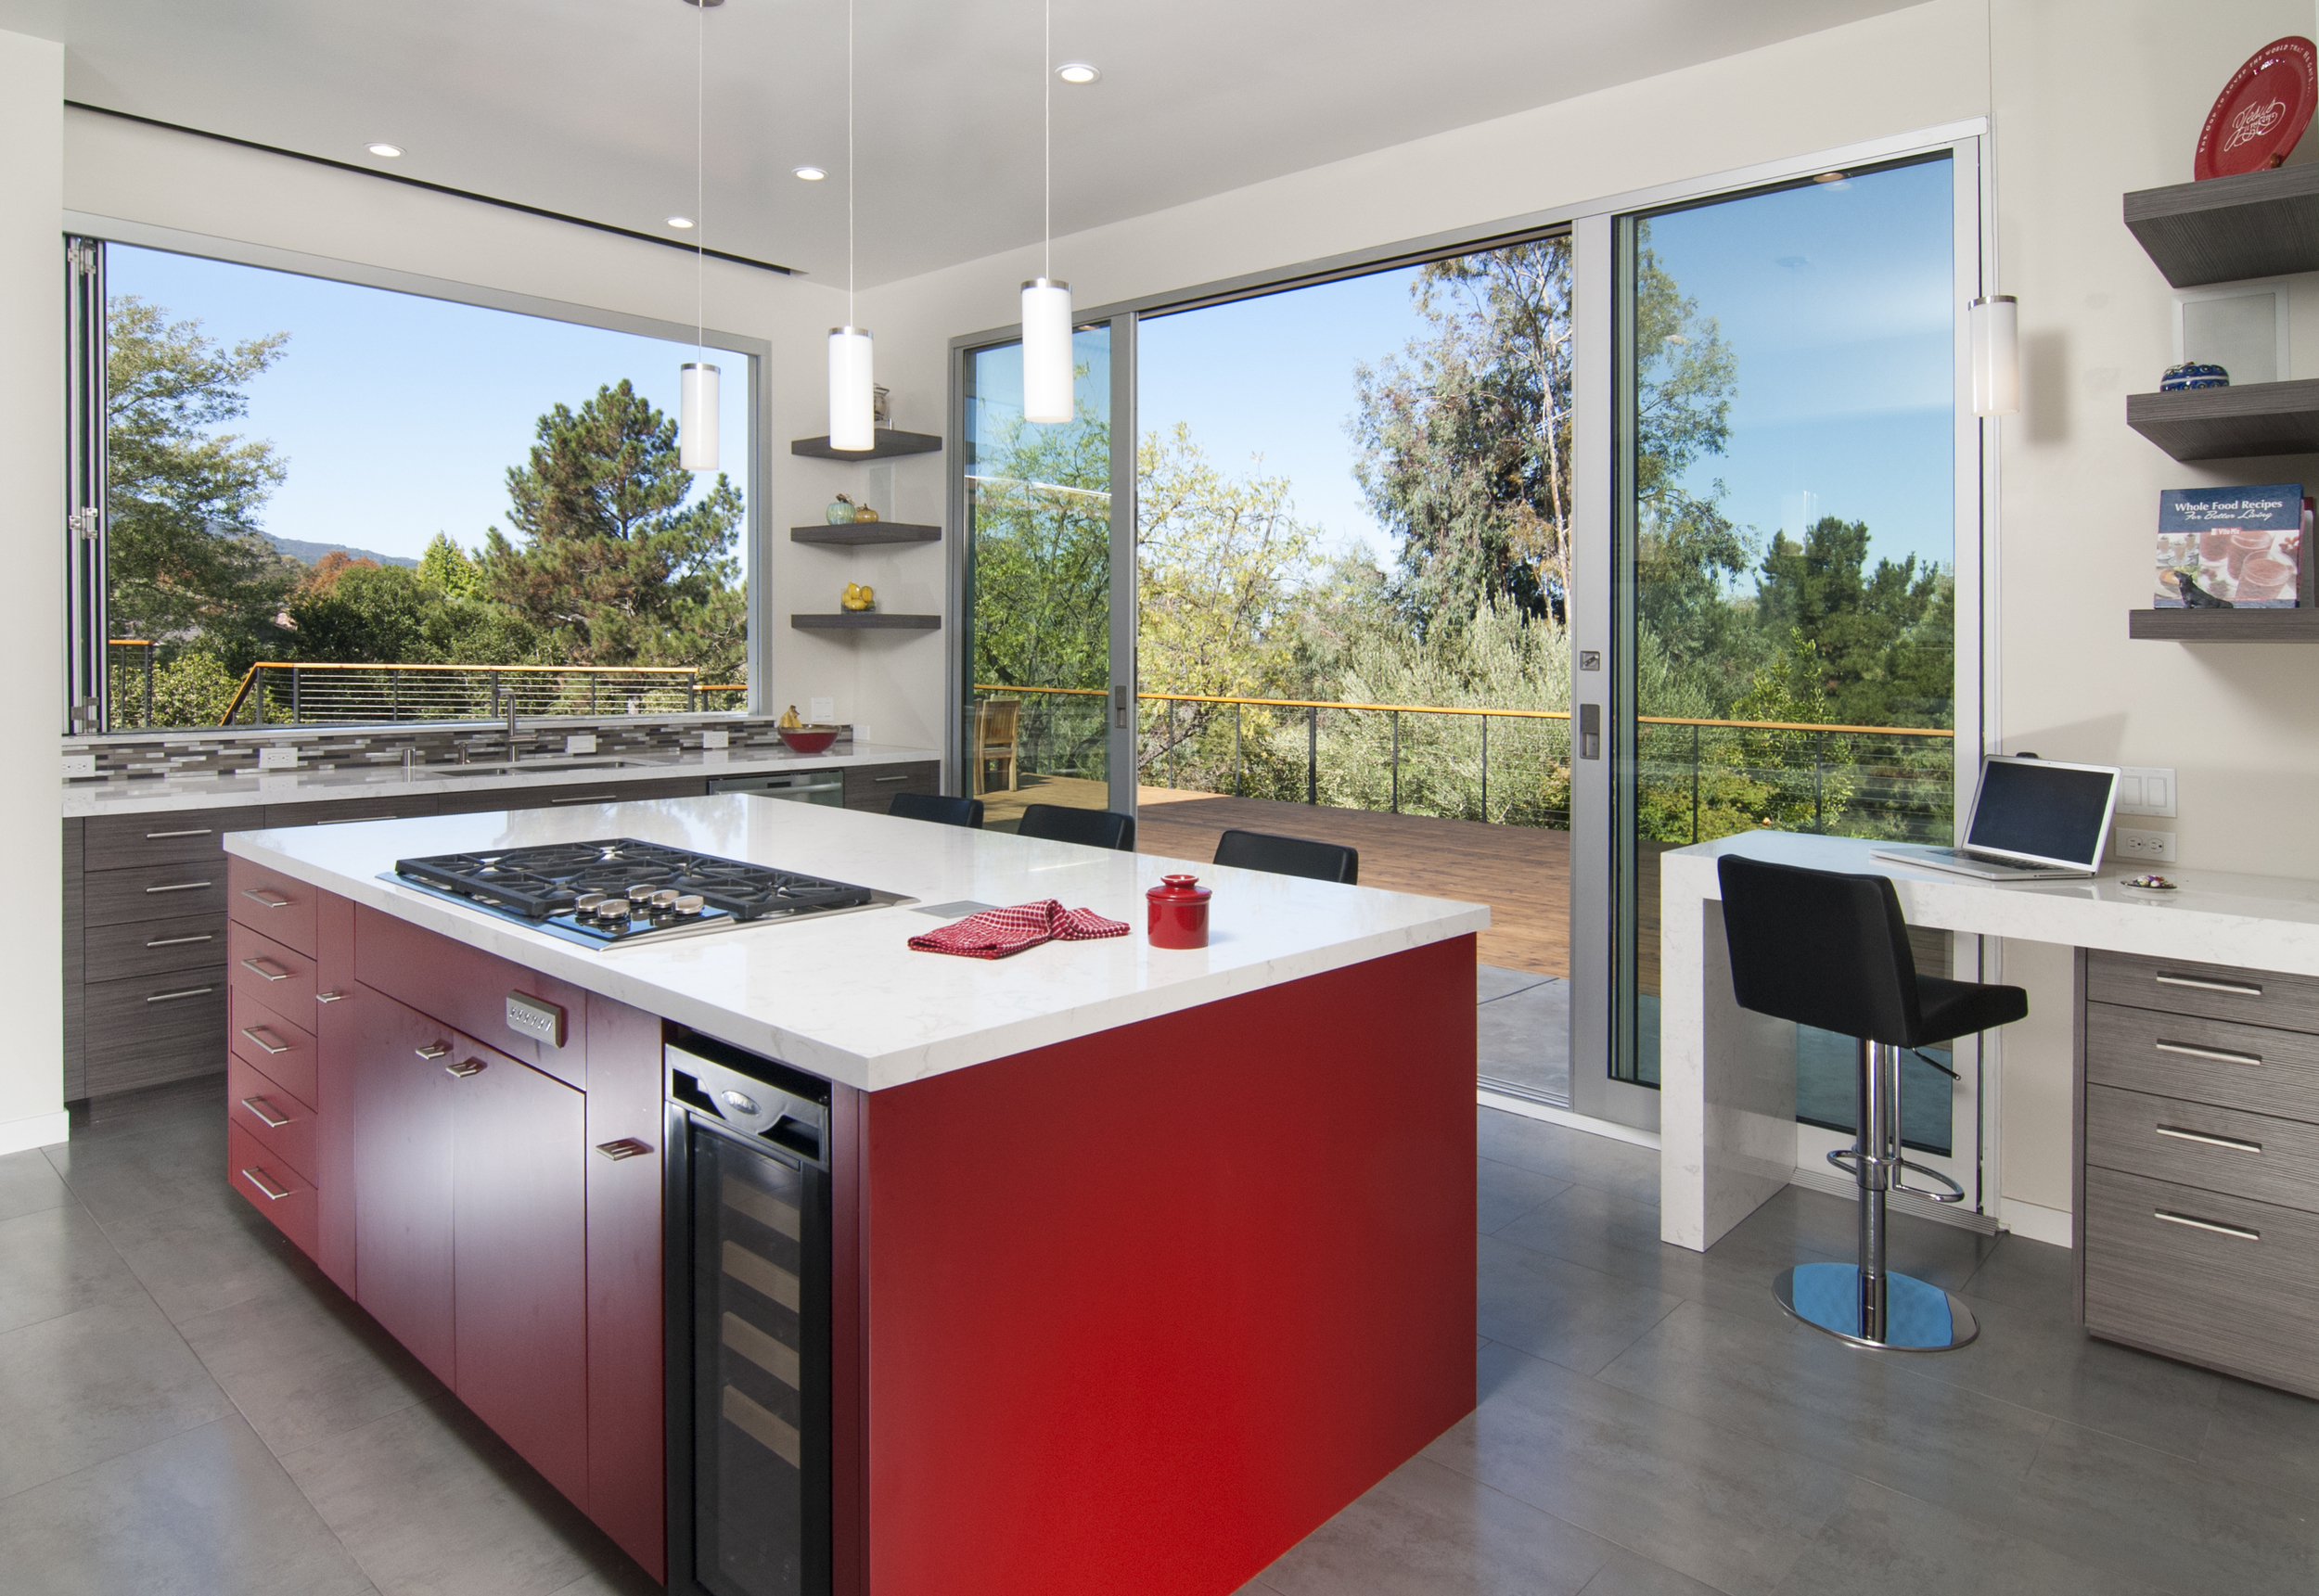 A San Francisco remodel featuring our new Frameless line with Sherwin Williams' vibrant Pomegranate Red